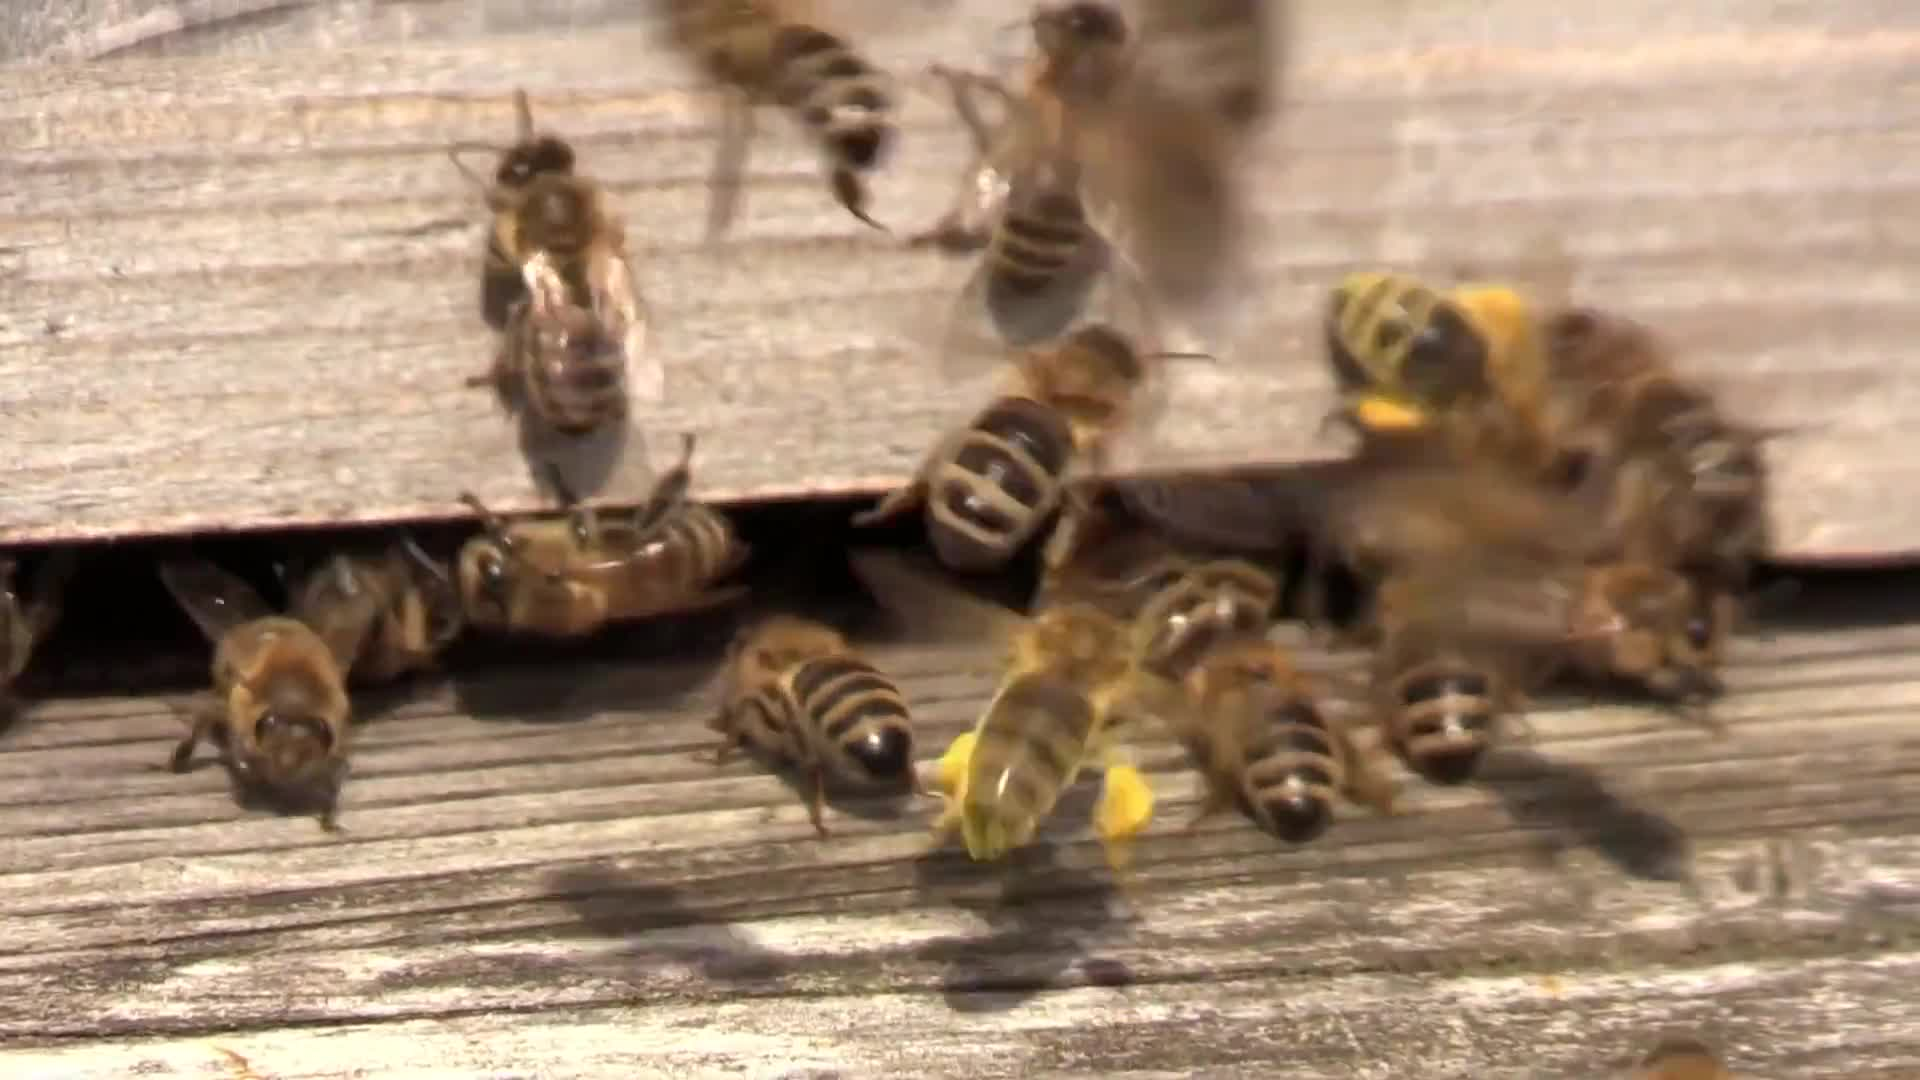 Video of flying bees